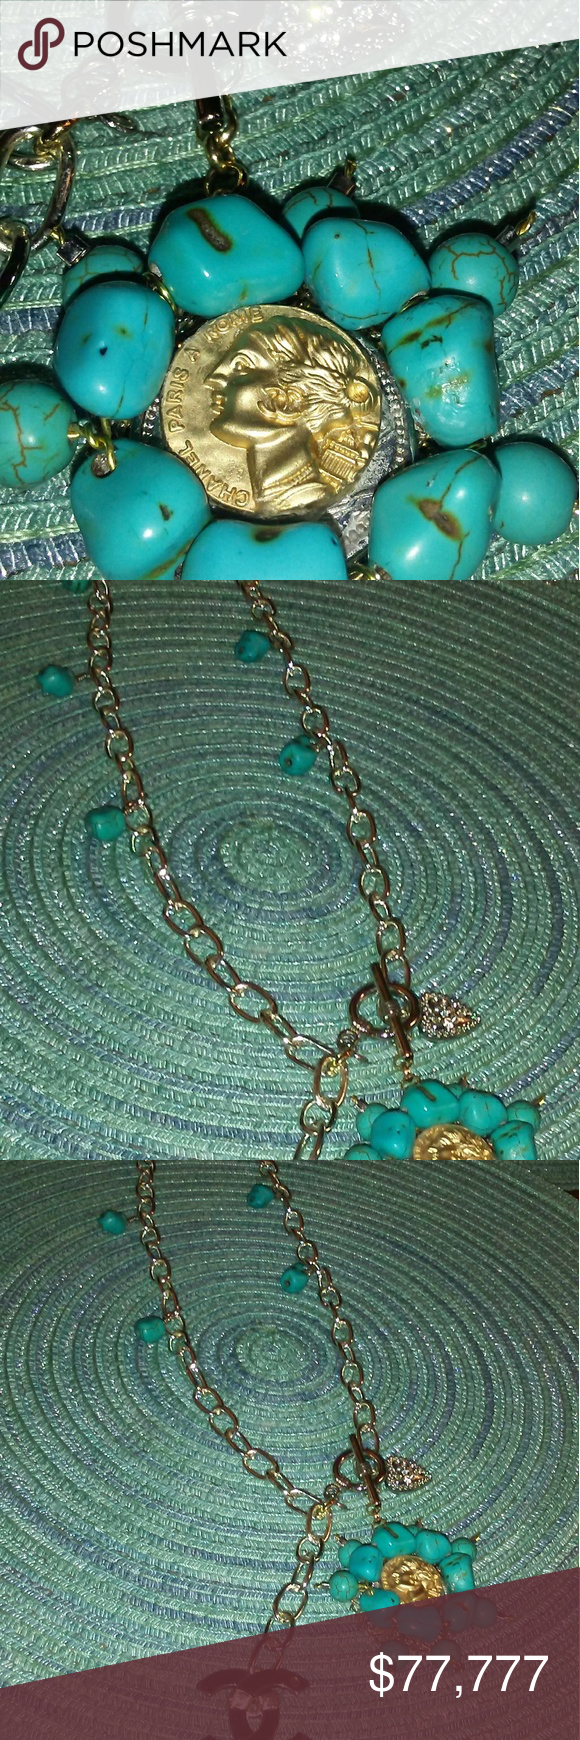 STUNNING COCO CHANEL GOLD BUTTON NECKLACE This is a